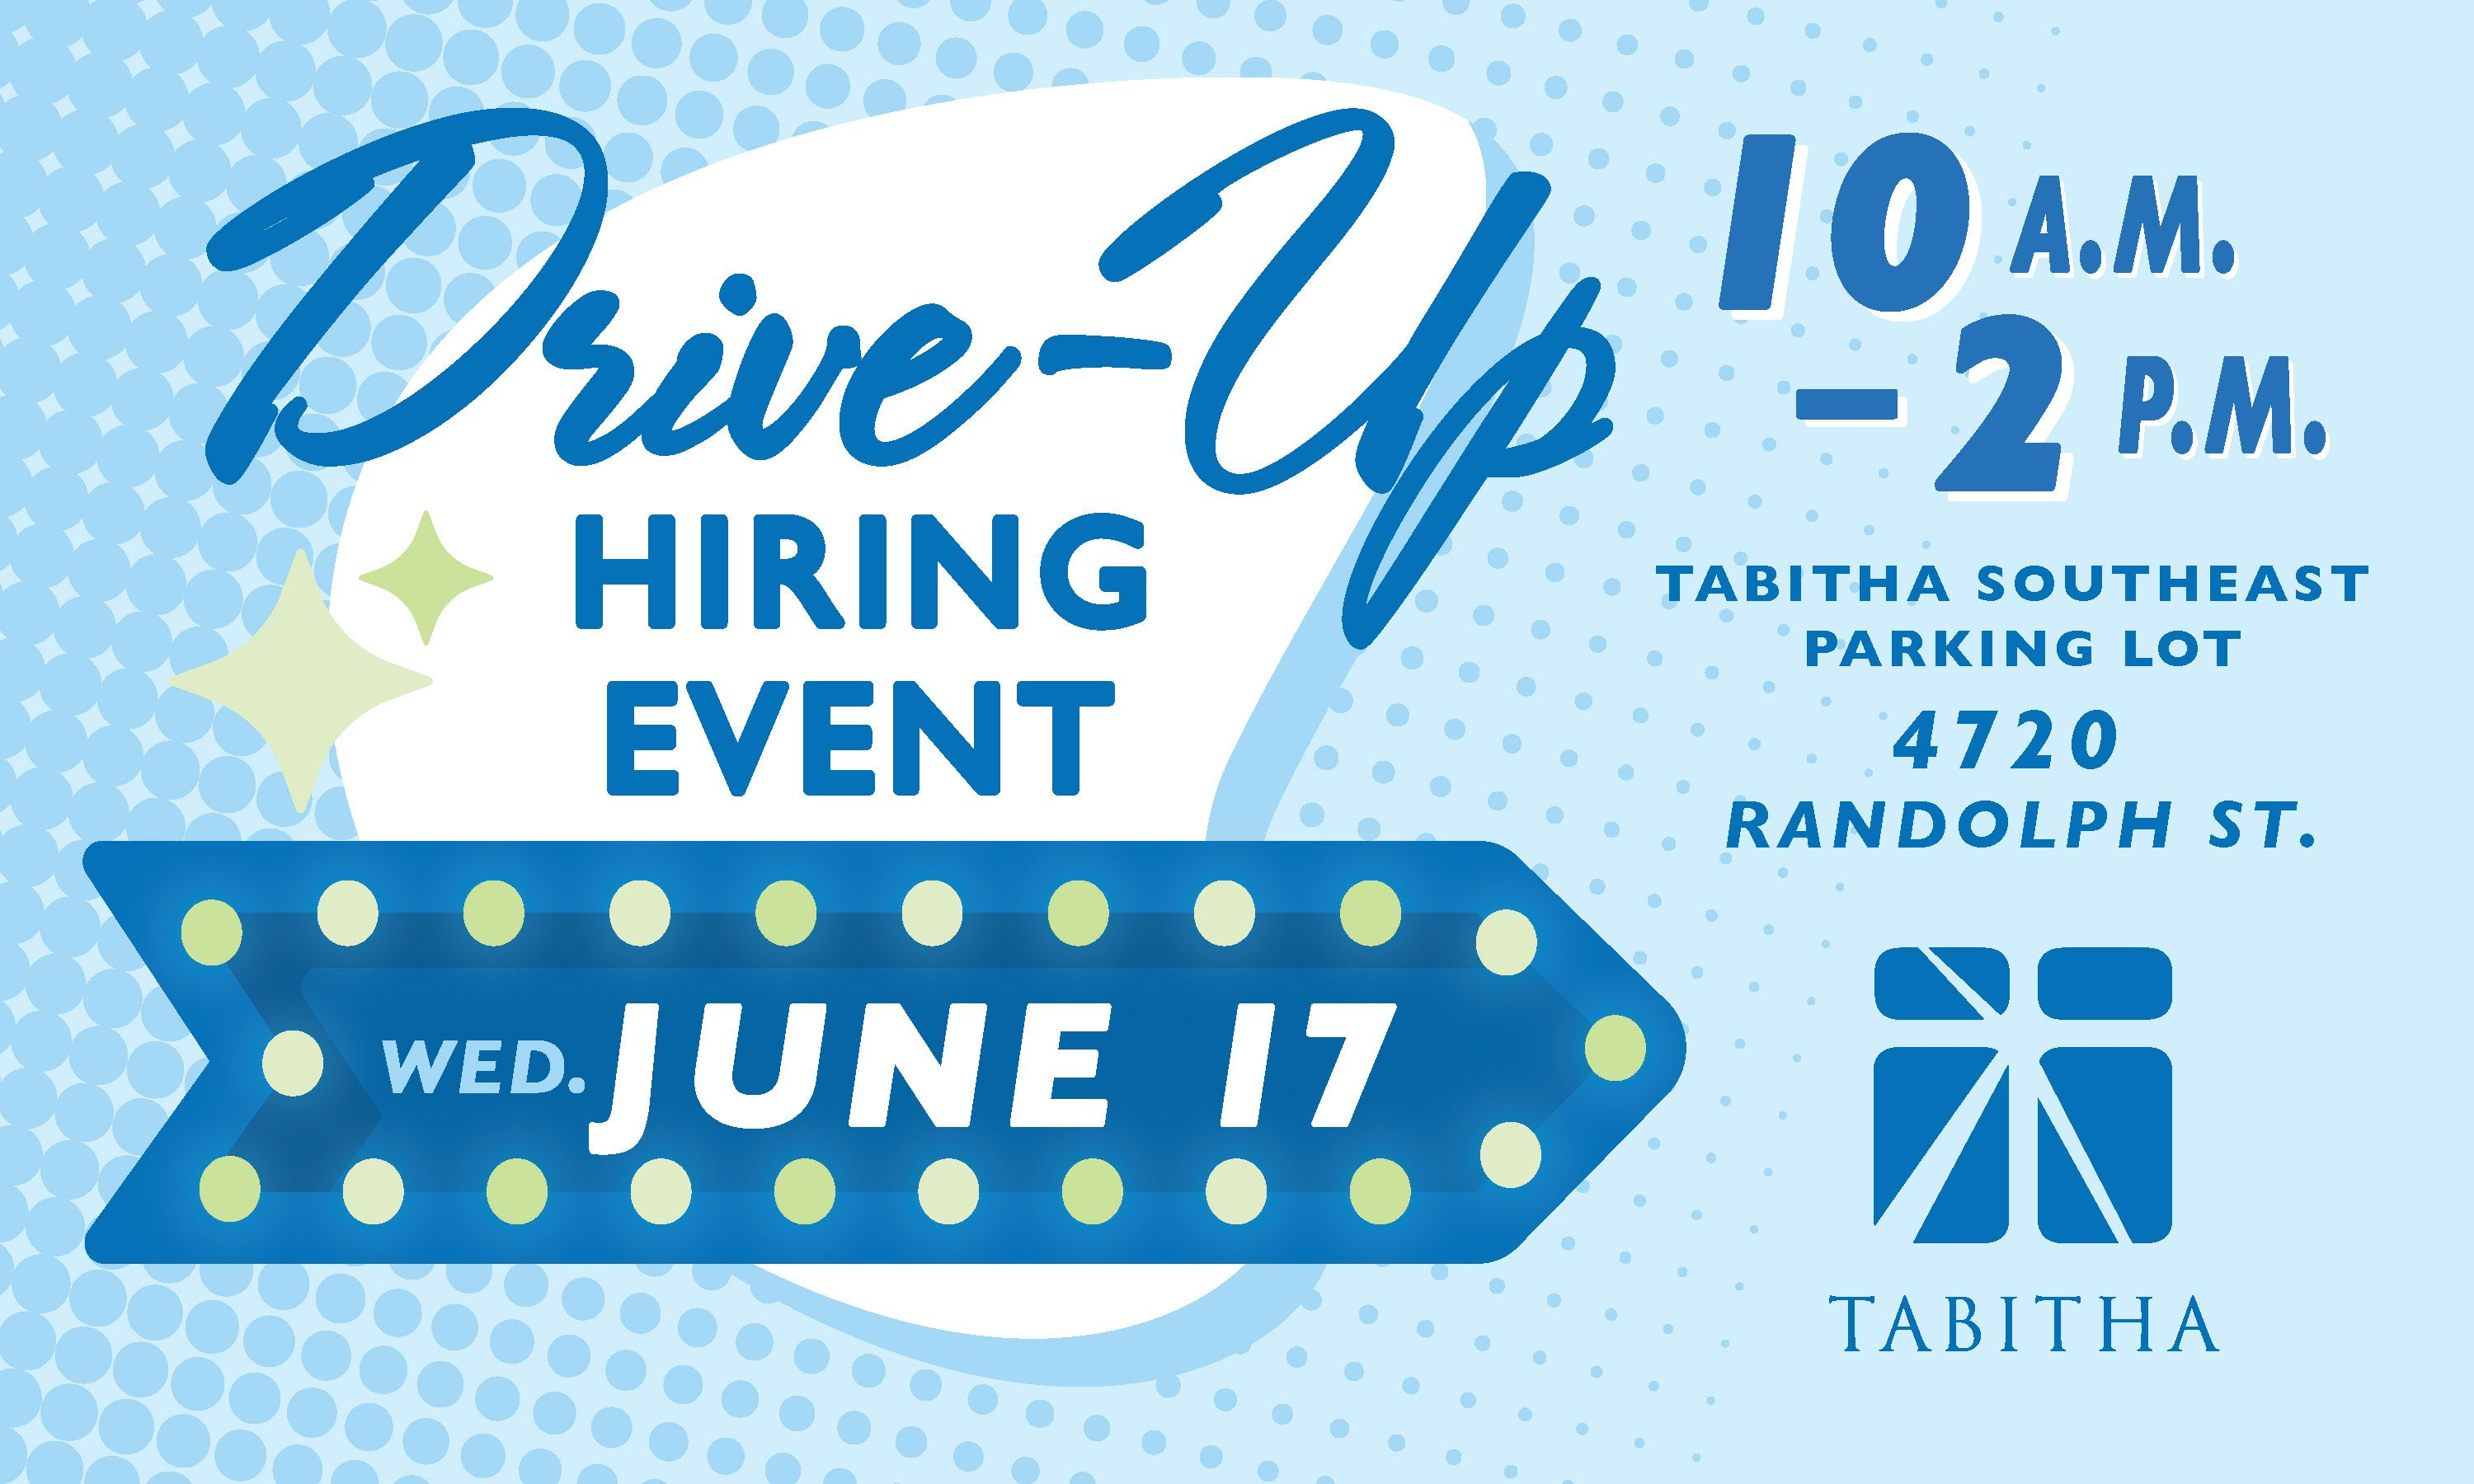 Drive-Up Hiring Event